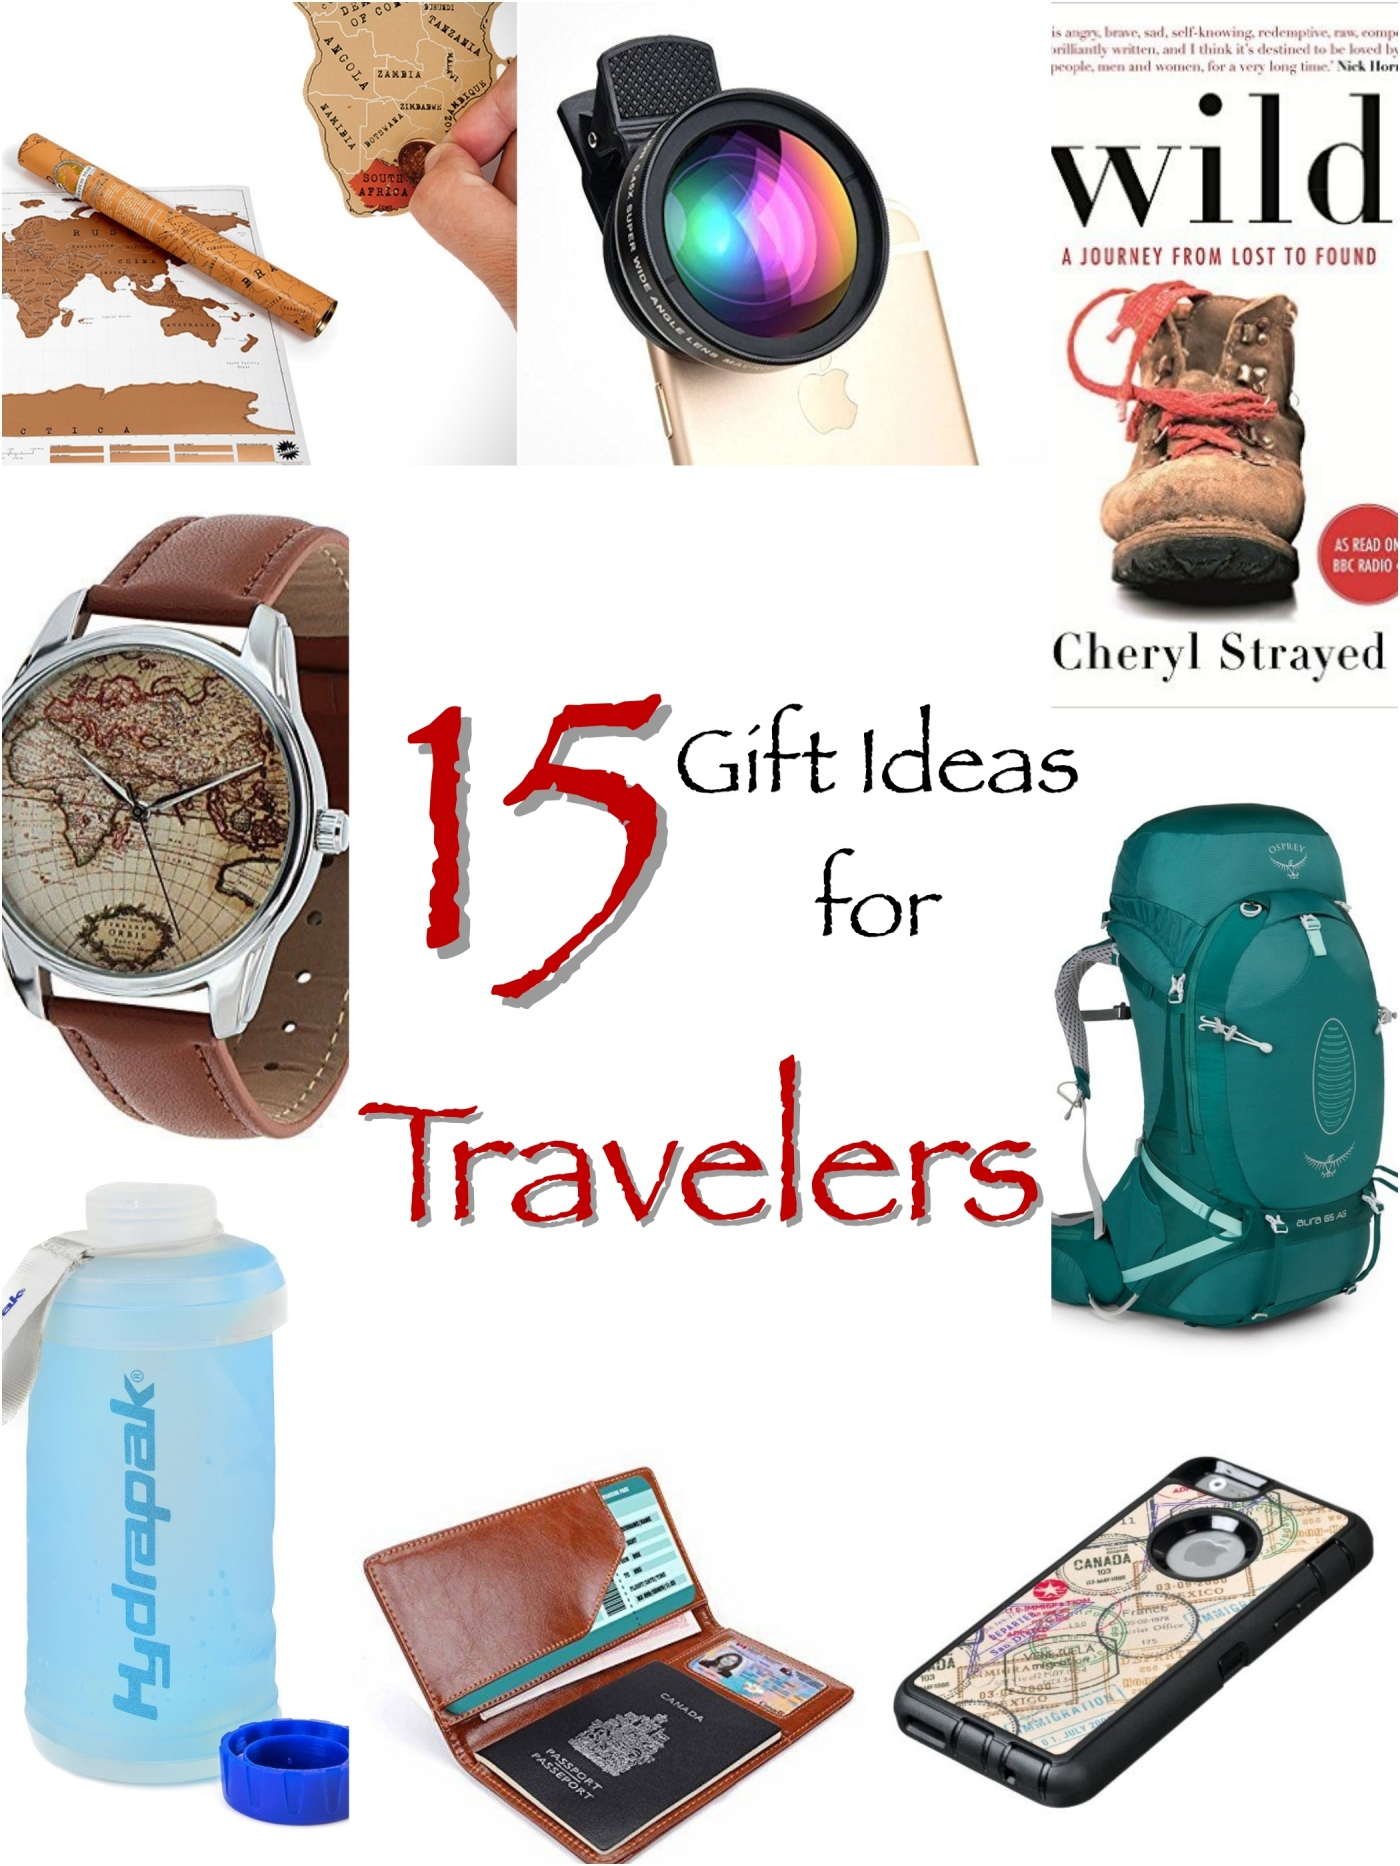 15 Gift Ideas for Travelers – Antevasin